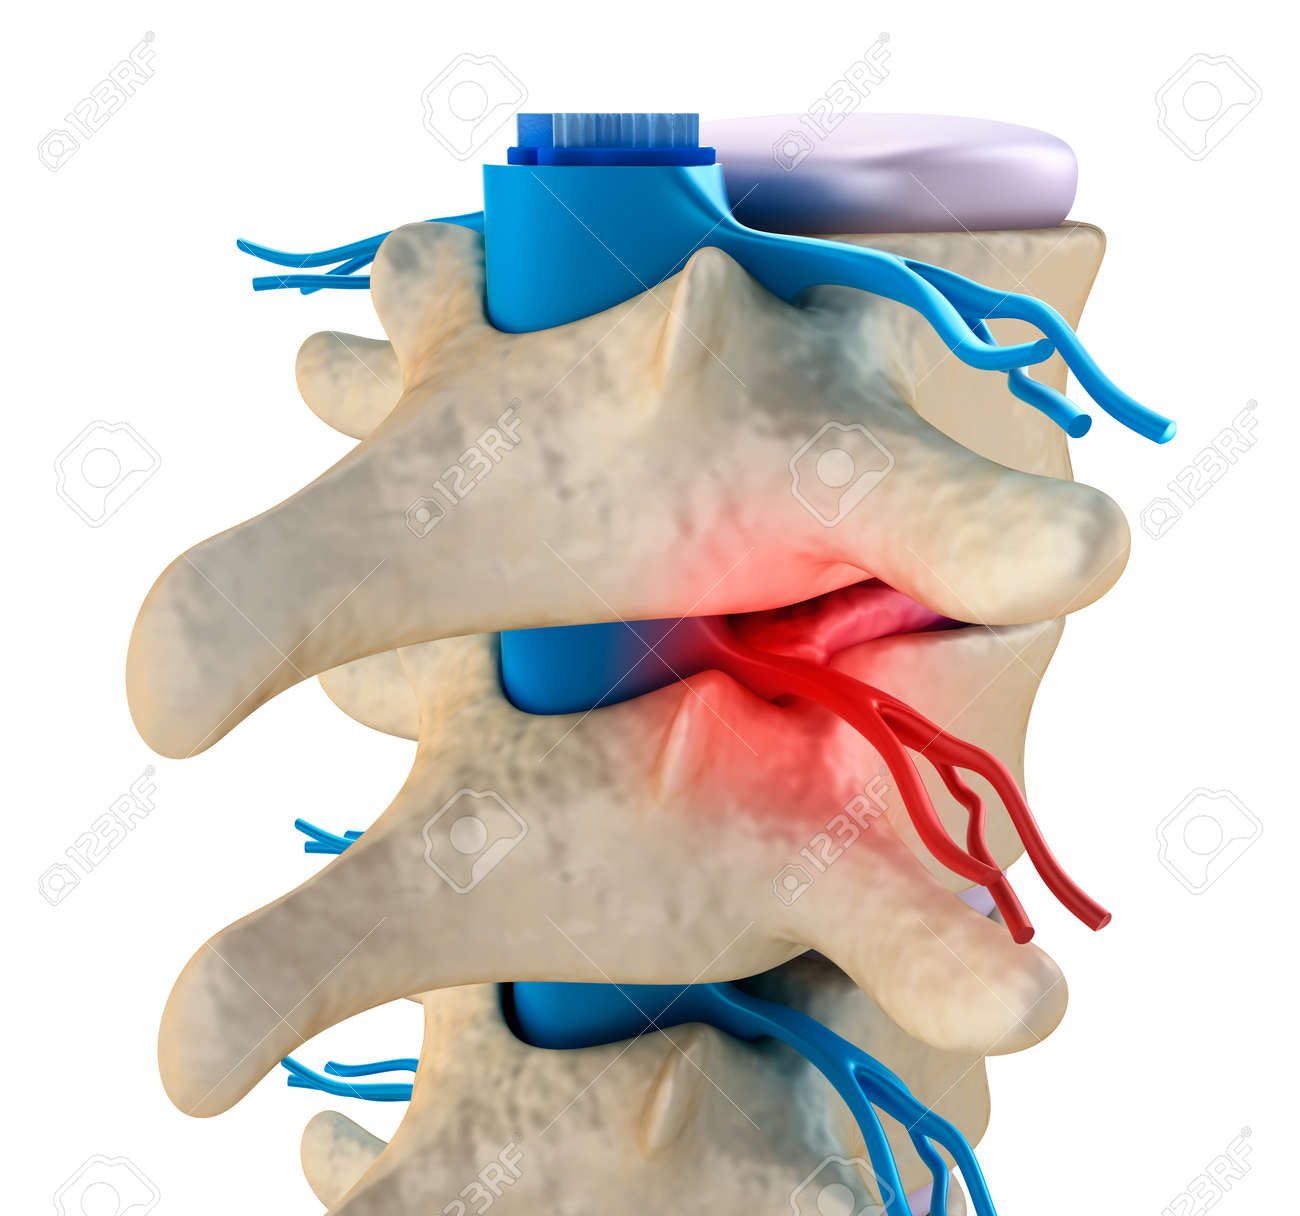 Spinal cord under pressure of bulging disc Stock Photo - 40009617